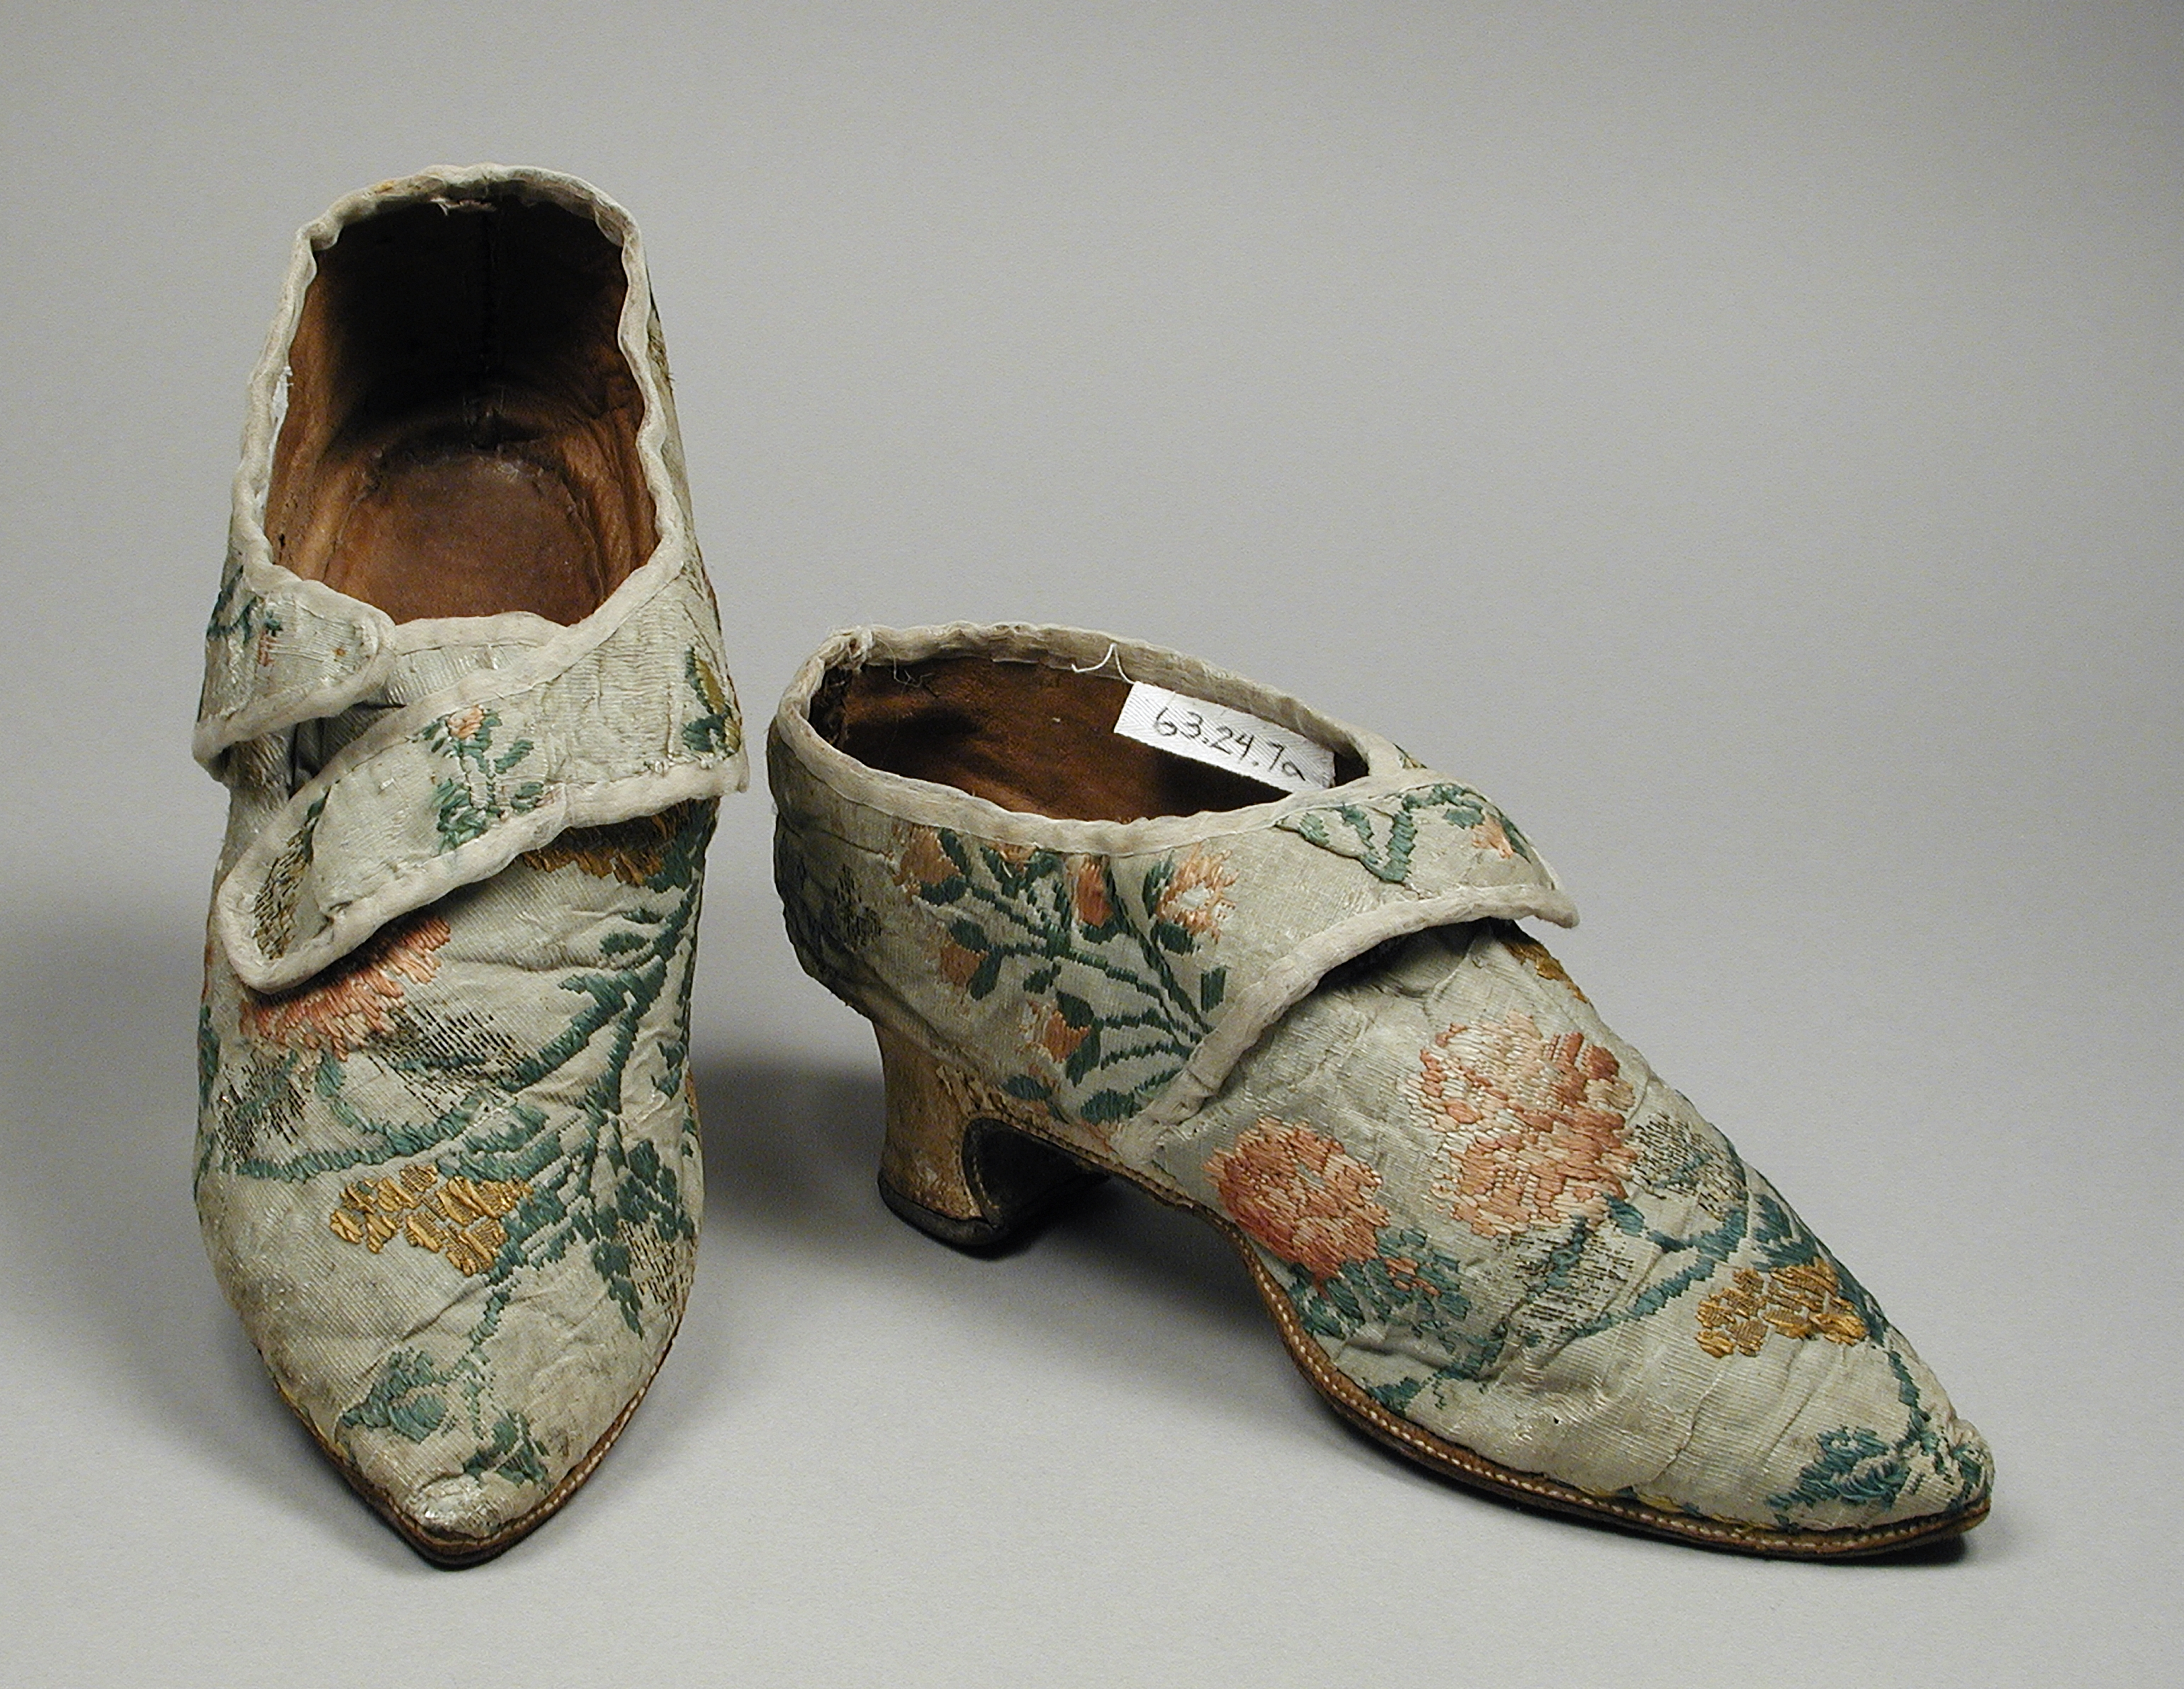 1775 95 in western fashion w s silk brocade shoes straps for shoe buckles 1770s los angeles county museum of art 63 24 7a b